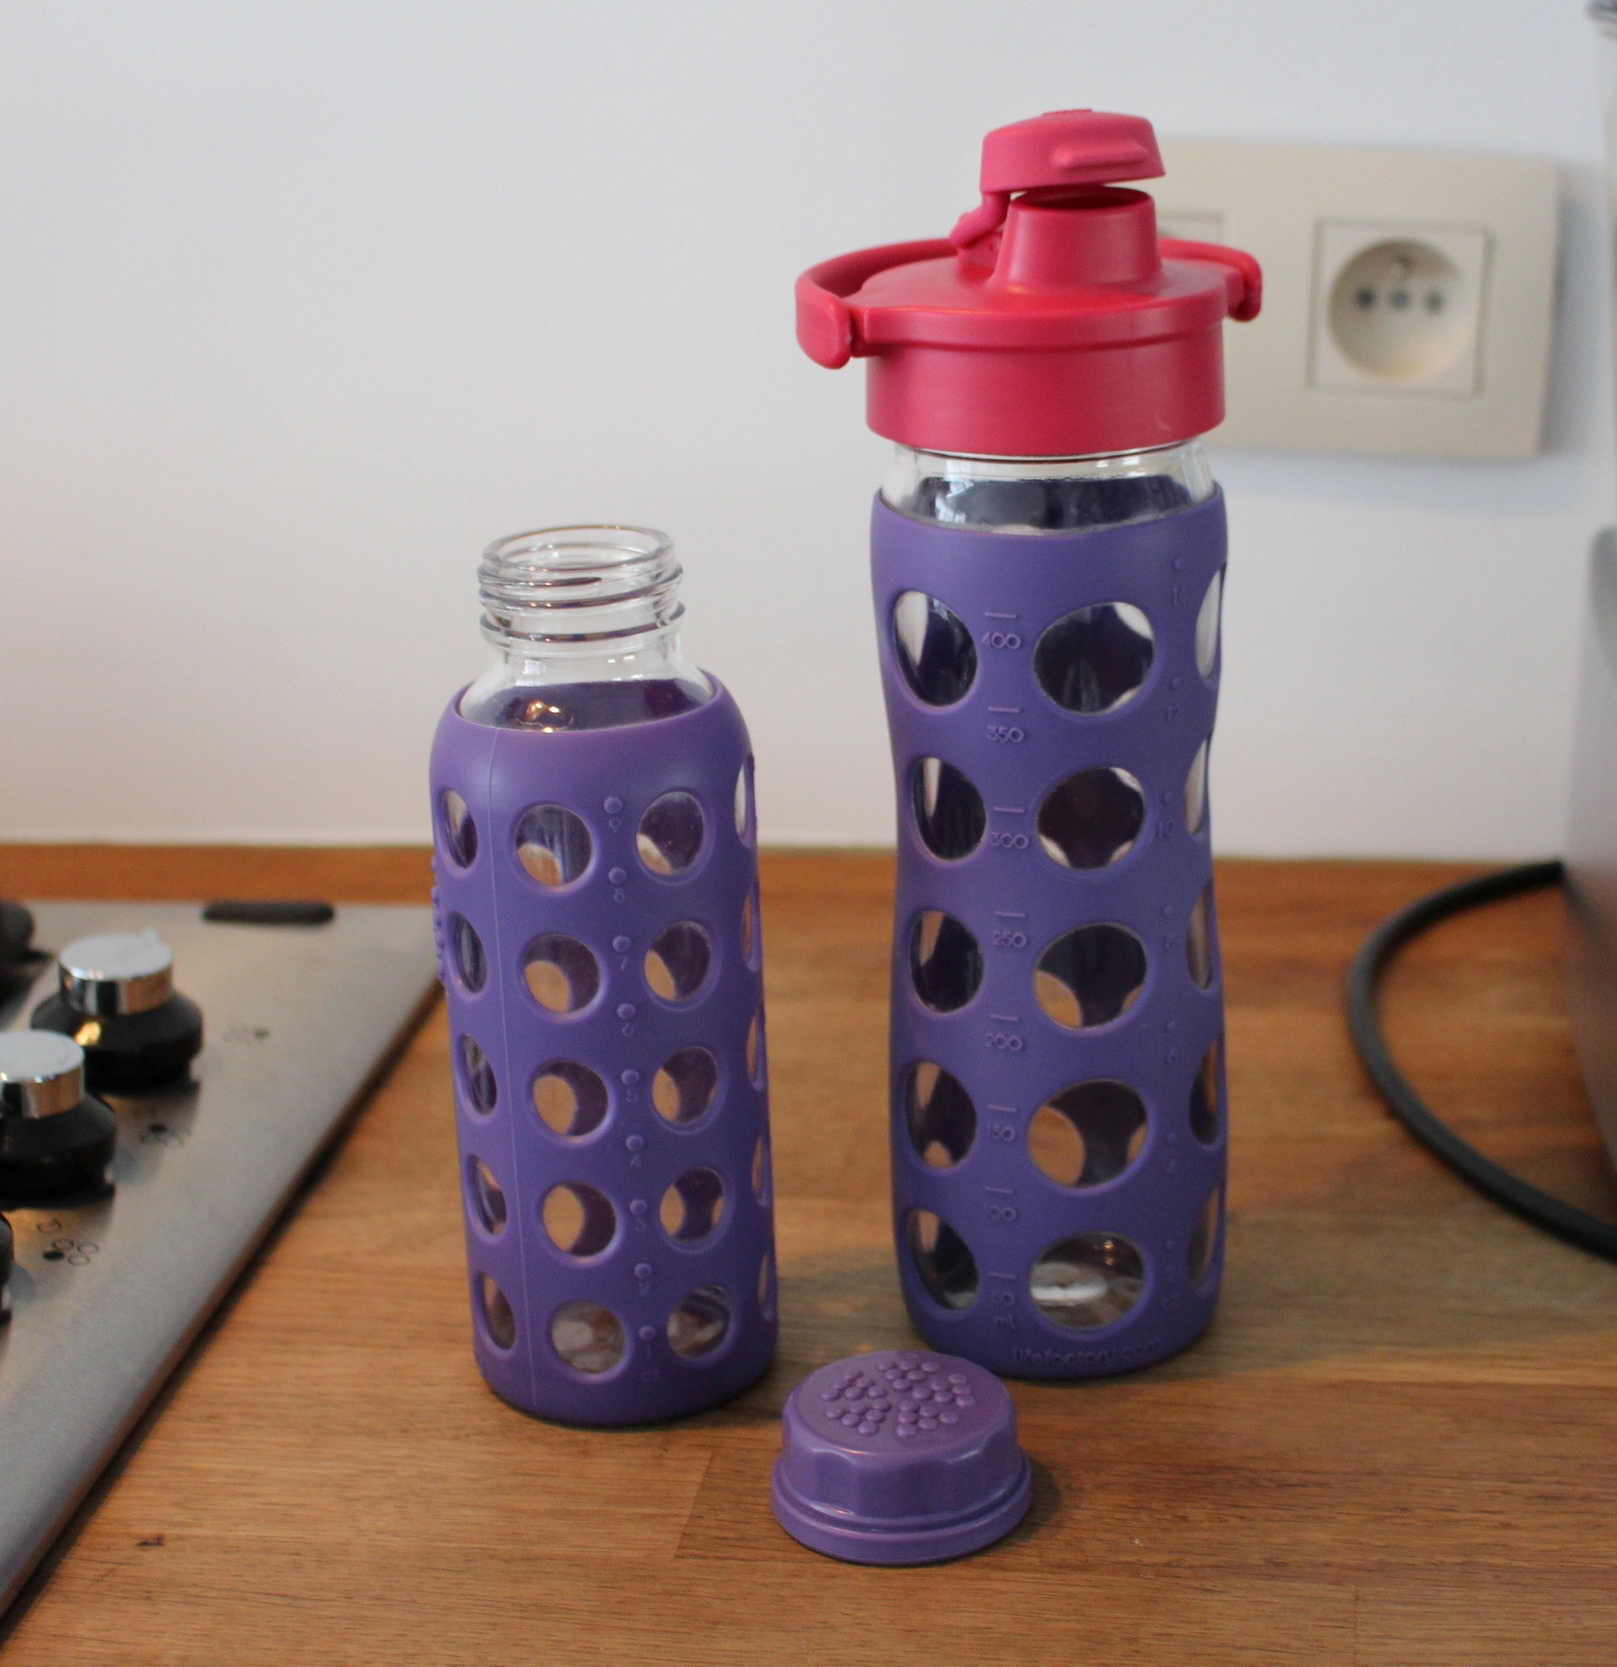 Image: my own lifefactory bottles. Two purple ones, one small 9oz bottle and one 16oz with fuscia bottle cap.